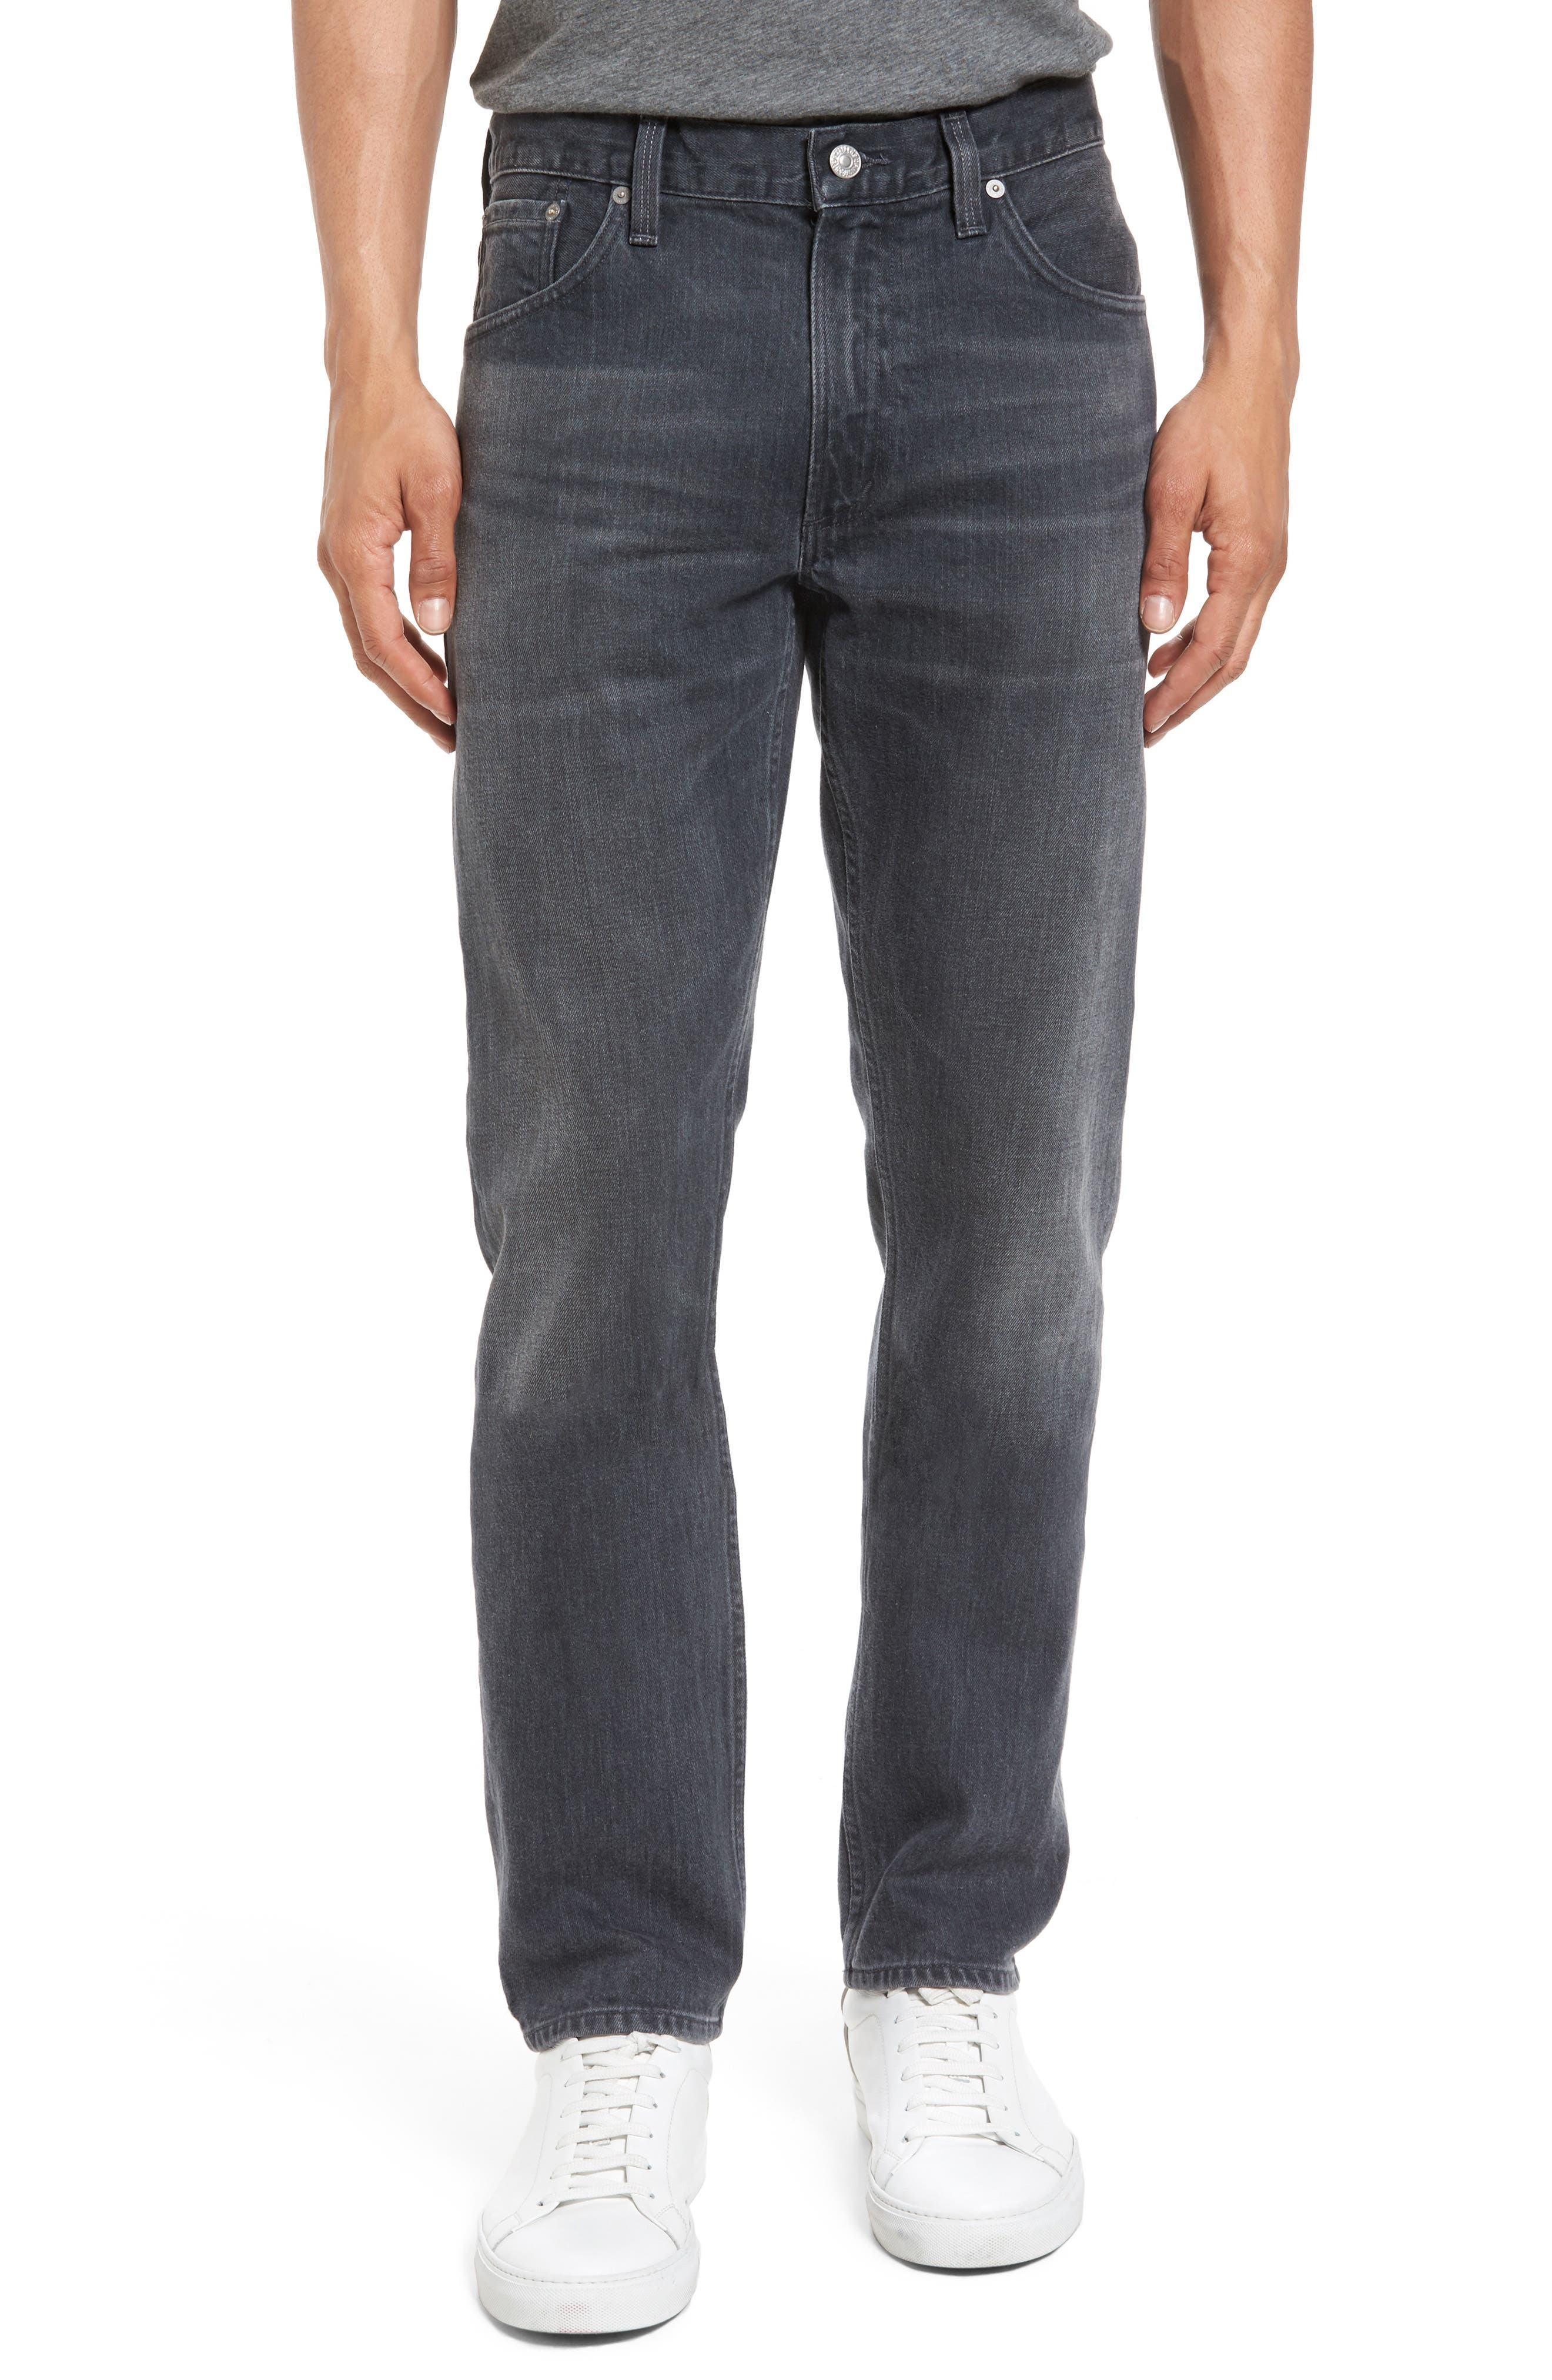 Main Image - Citizens of Humanity Bowery Slim Fit Jeans (Greystone)